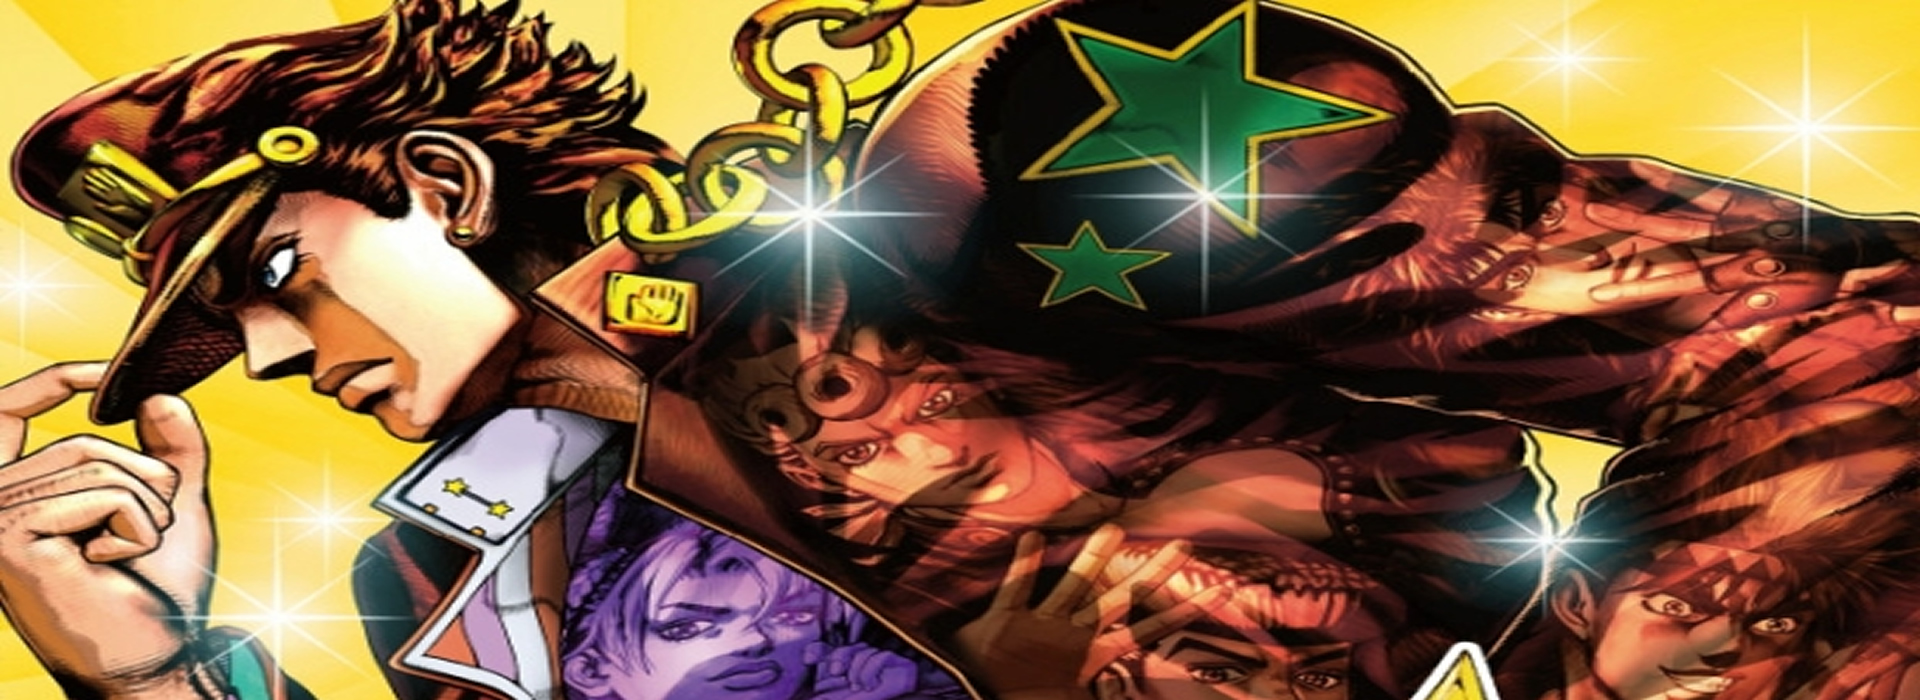 Jojo's Bizarre Adventure: All Star Battle Review: ZA WARUDO with the Best of Them